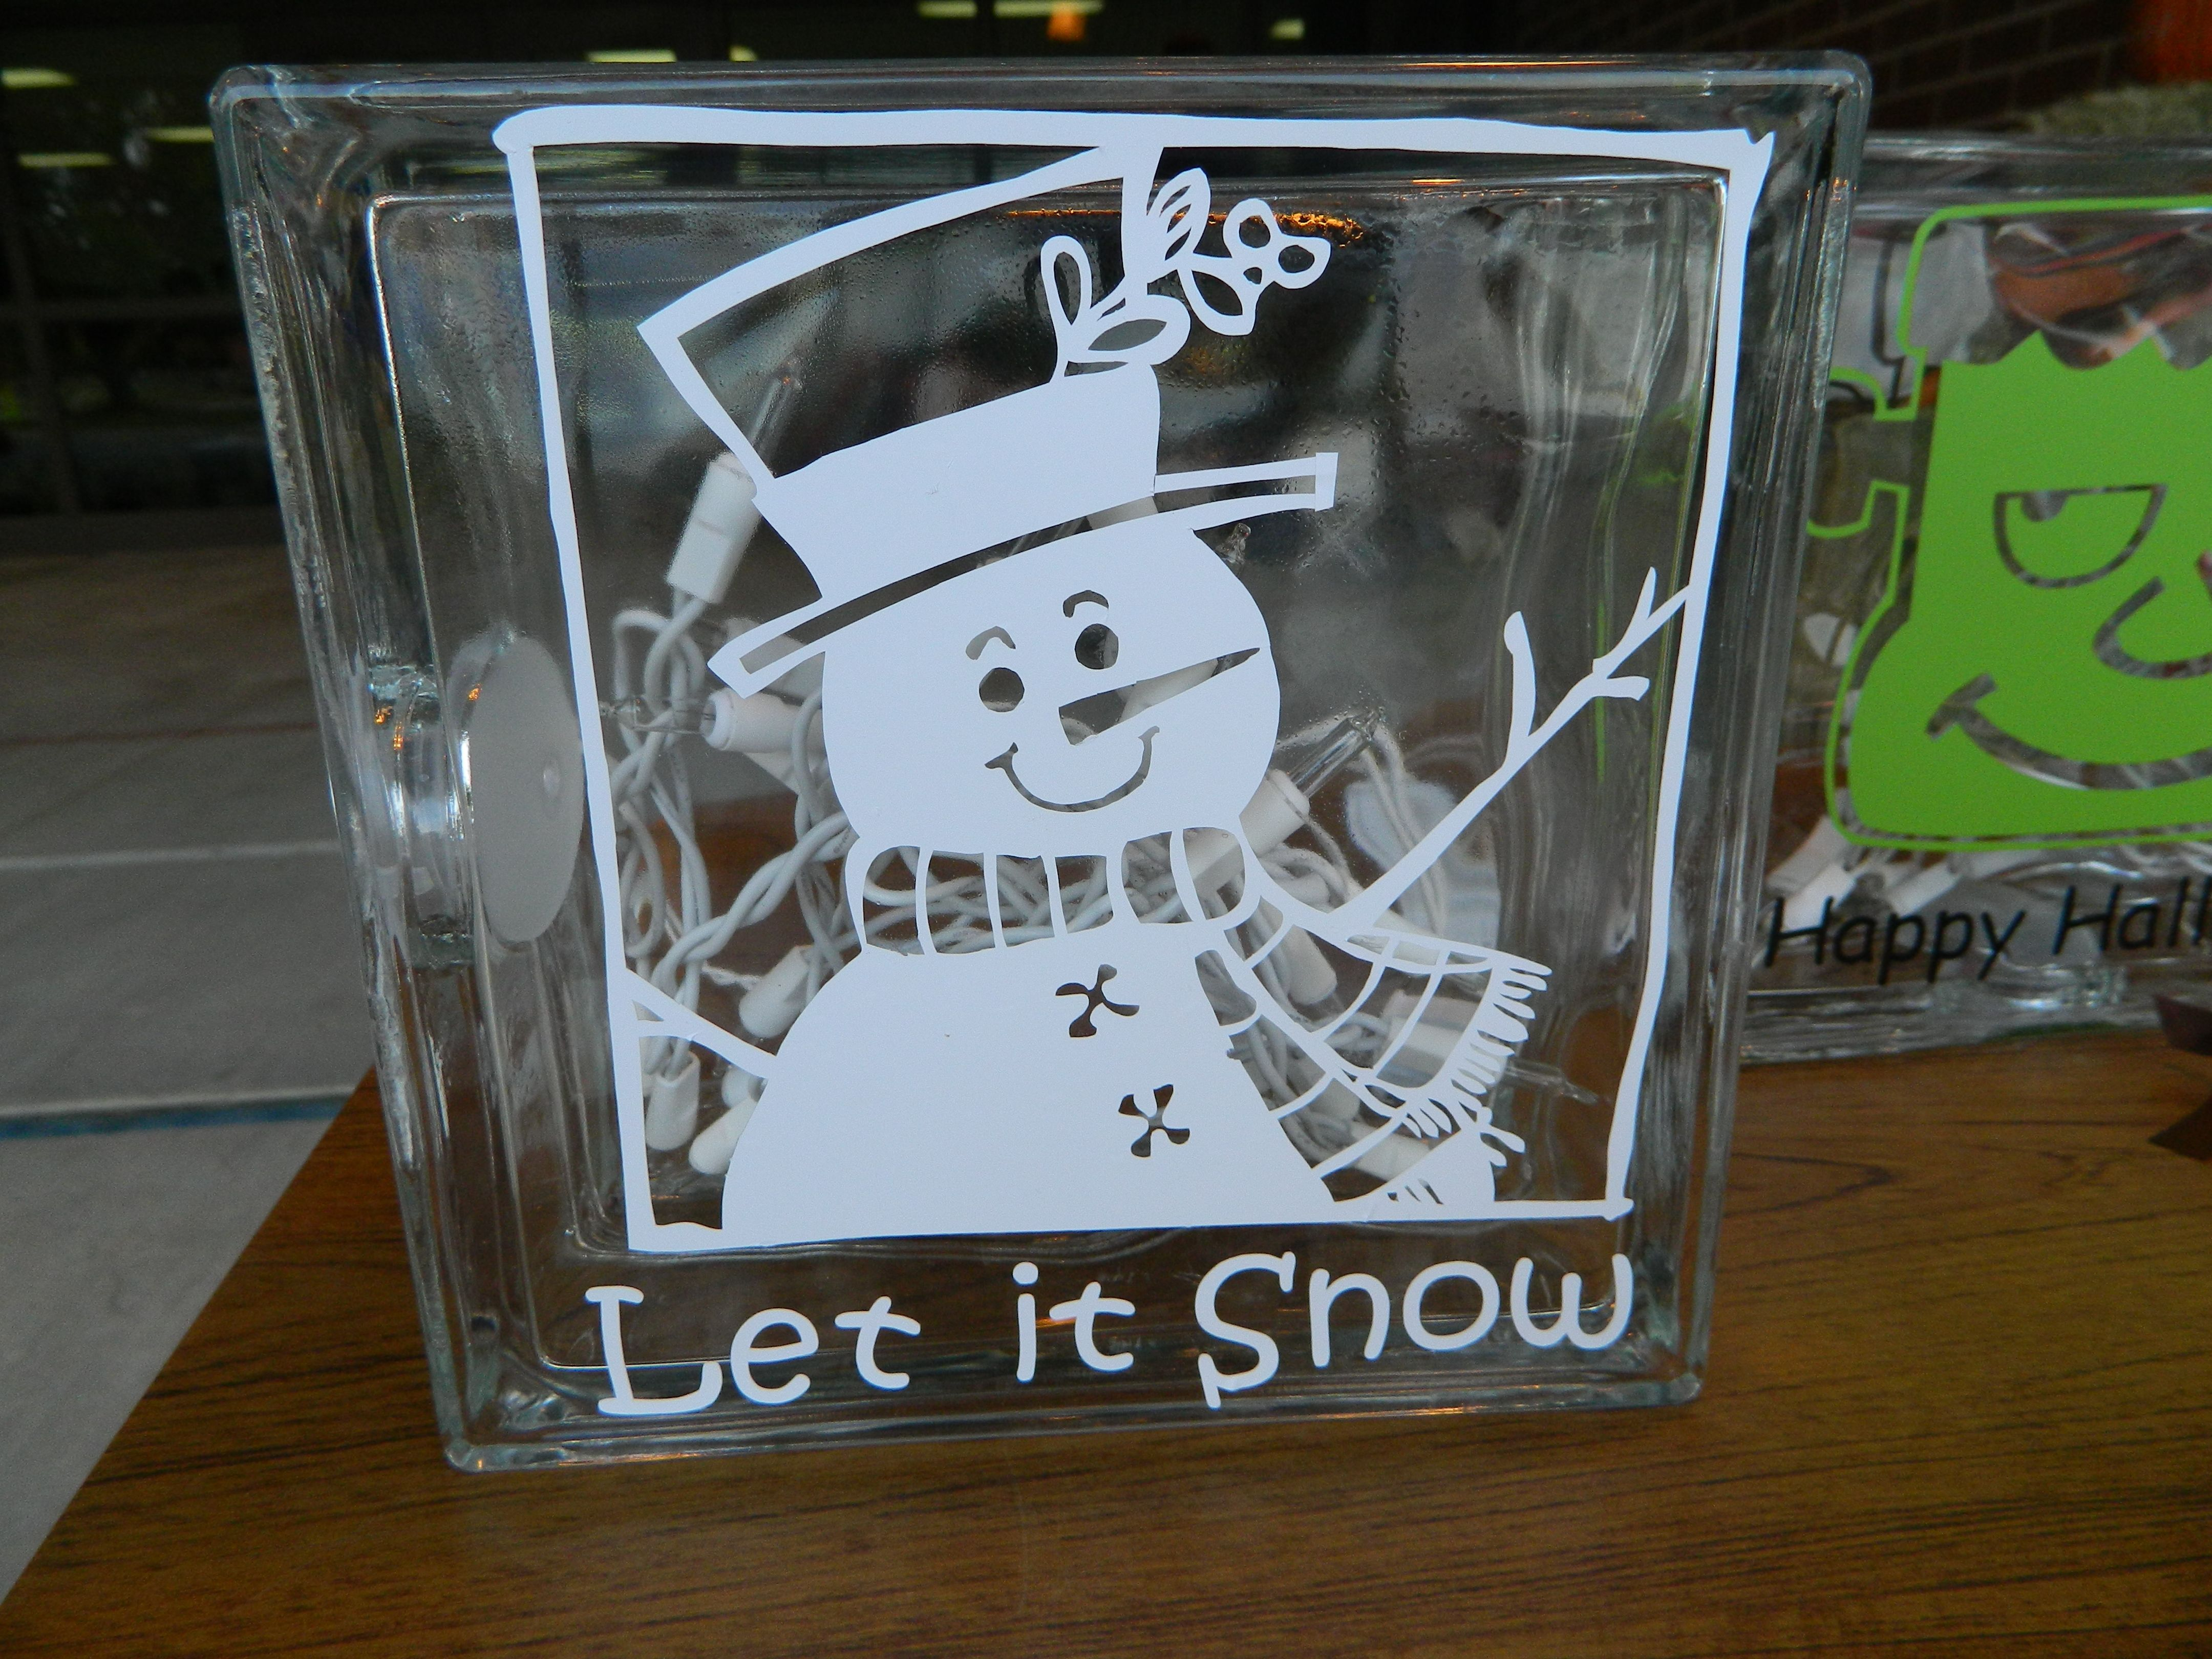 Clear glass blocks for crafts - Let It Snow Glass Block Gotta Find Some Blue Lights For It Instead Of The